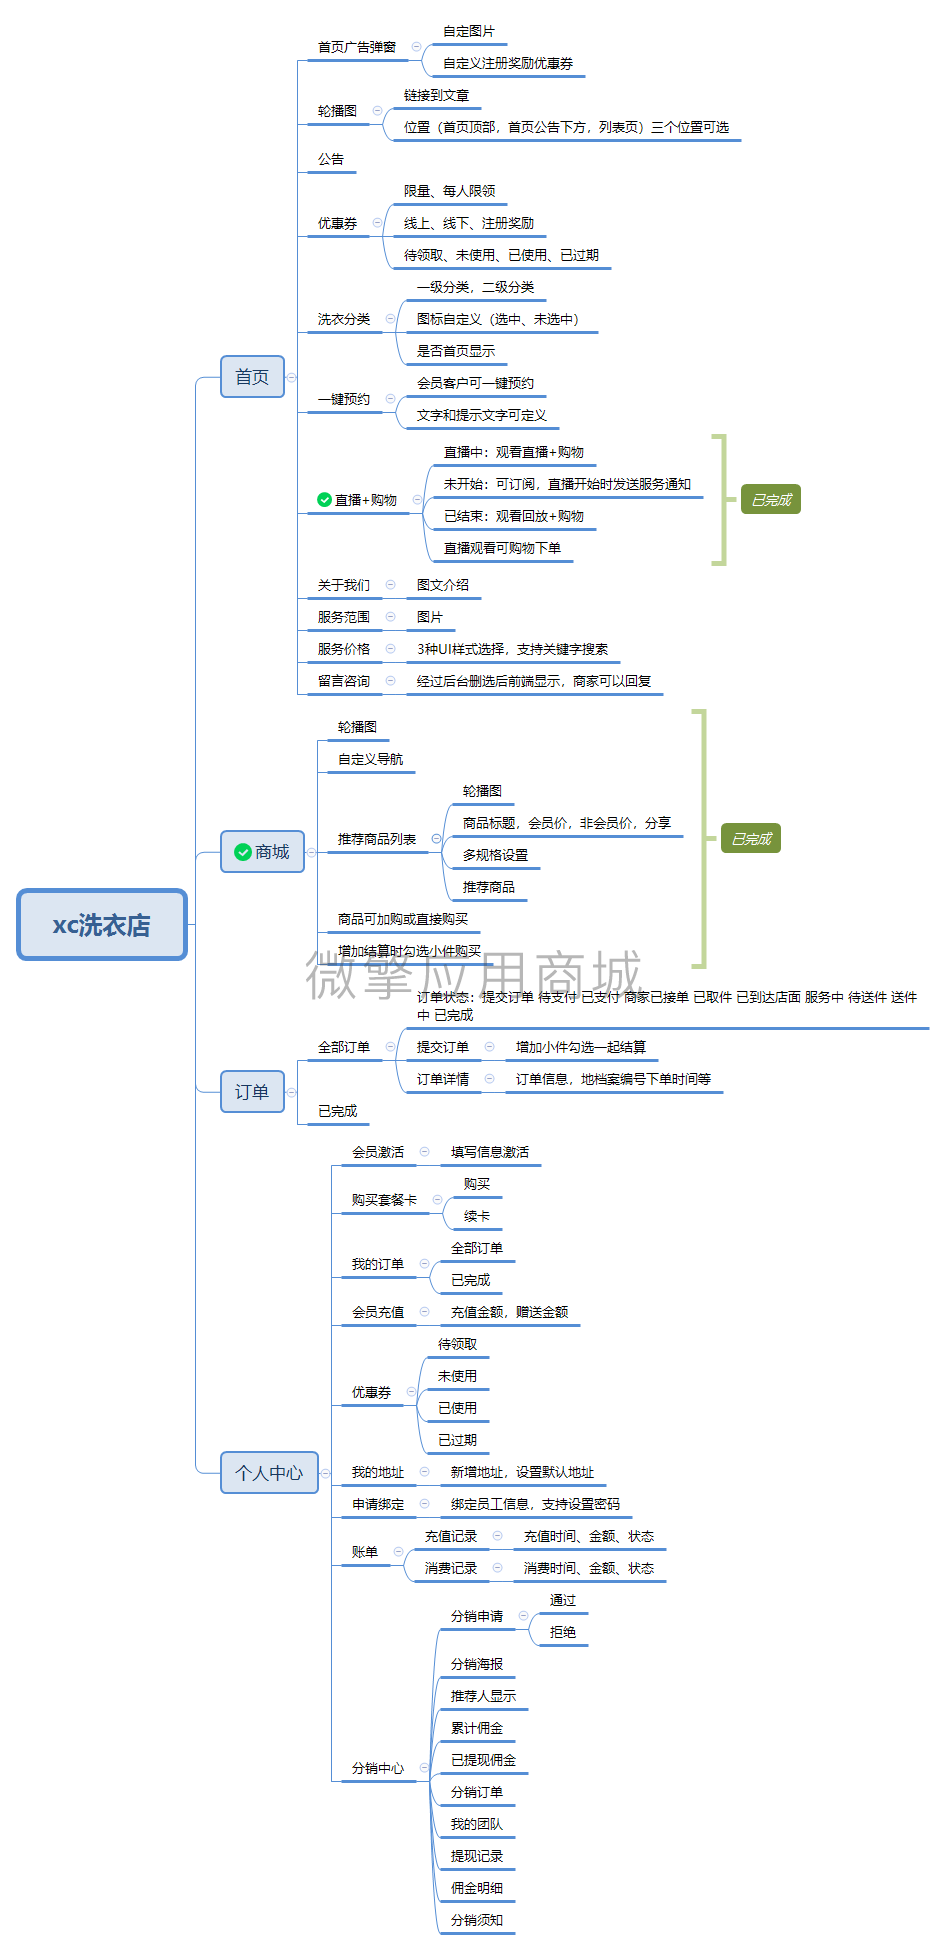 xc洗衣店脑图.png